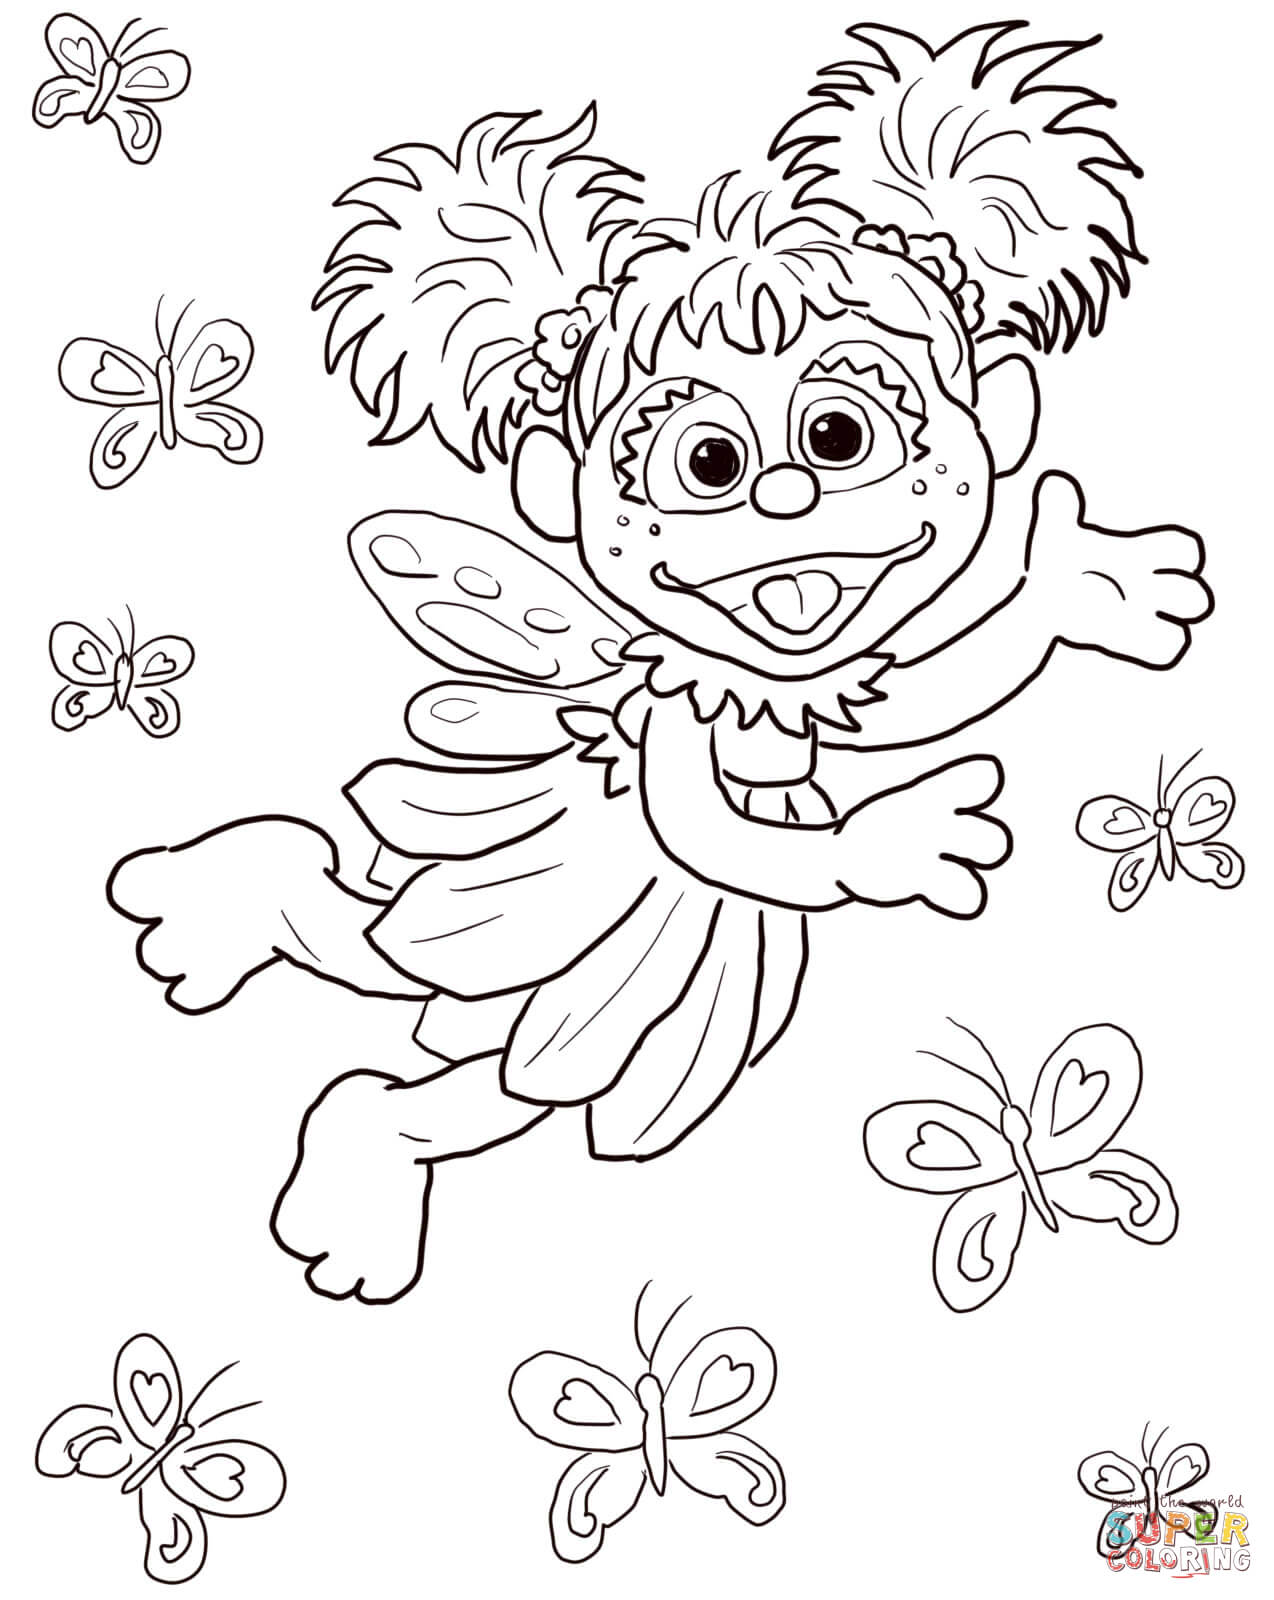 Sesame Street Coloring Pages For Toddlers